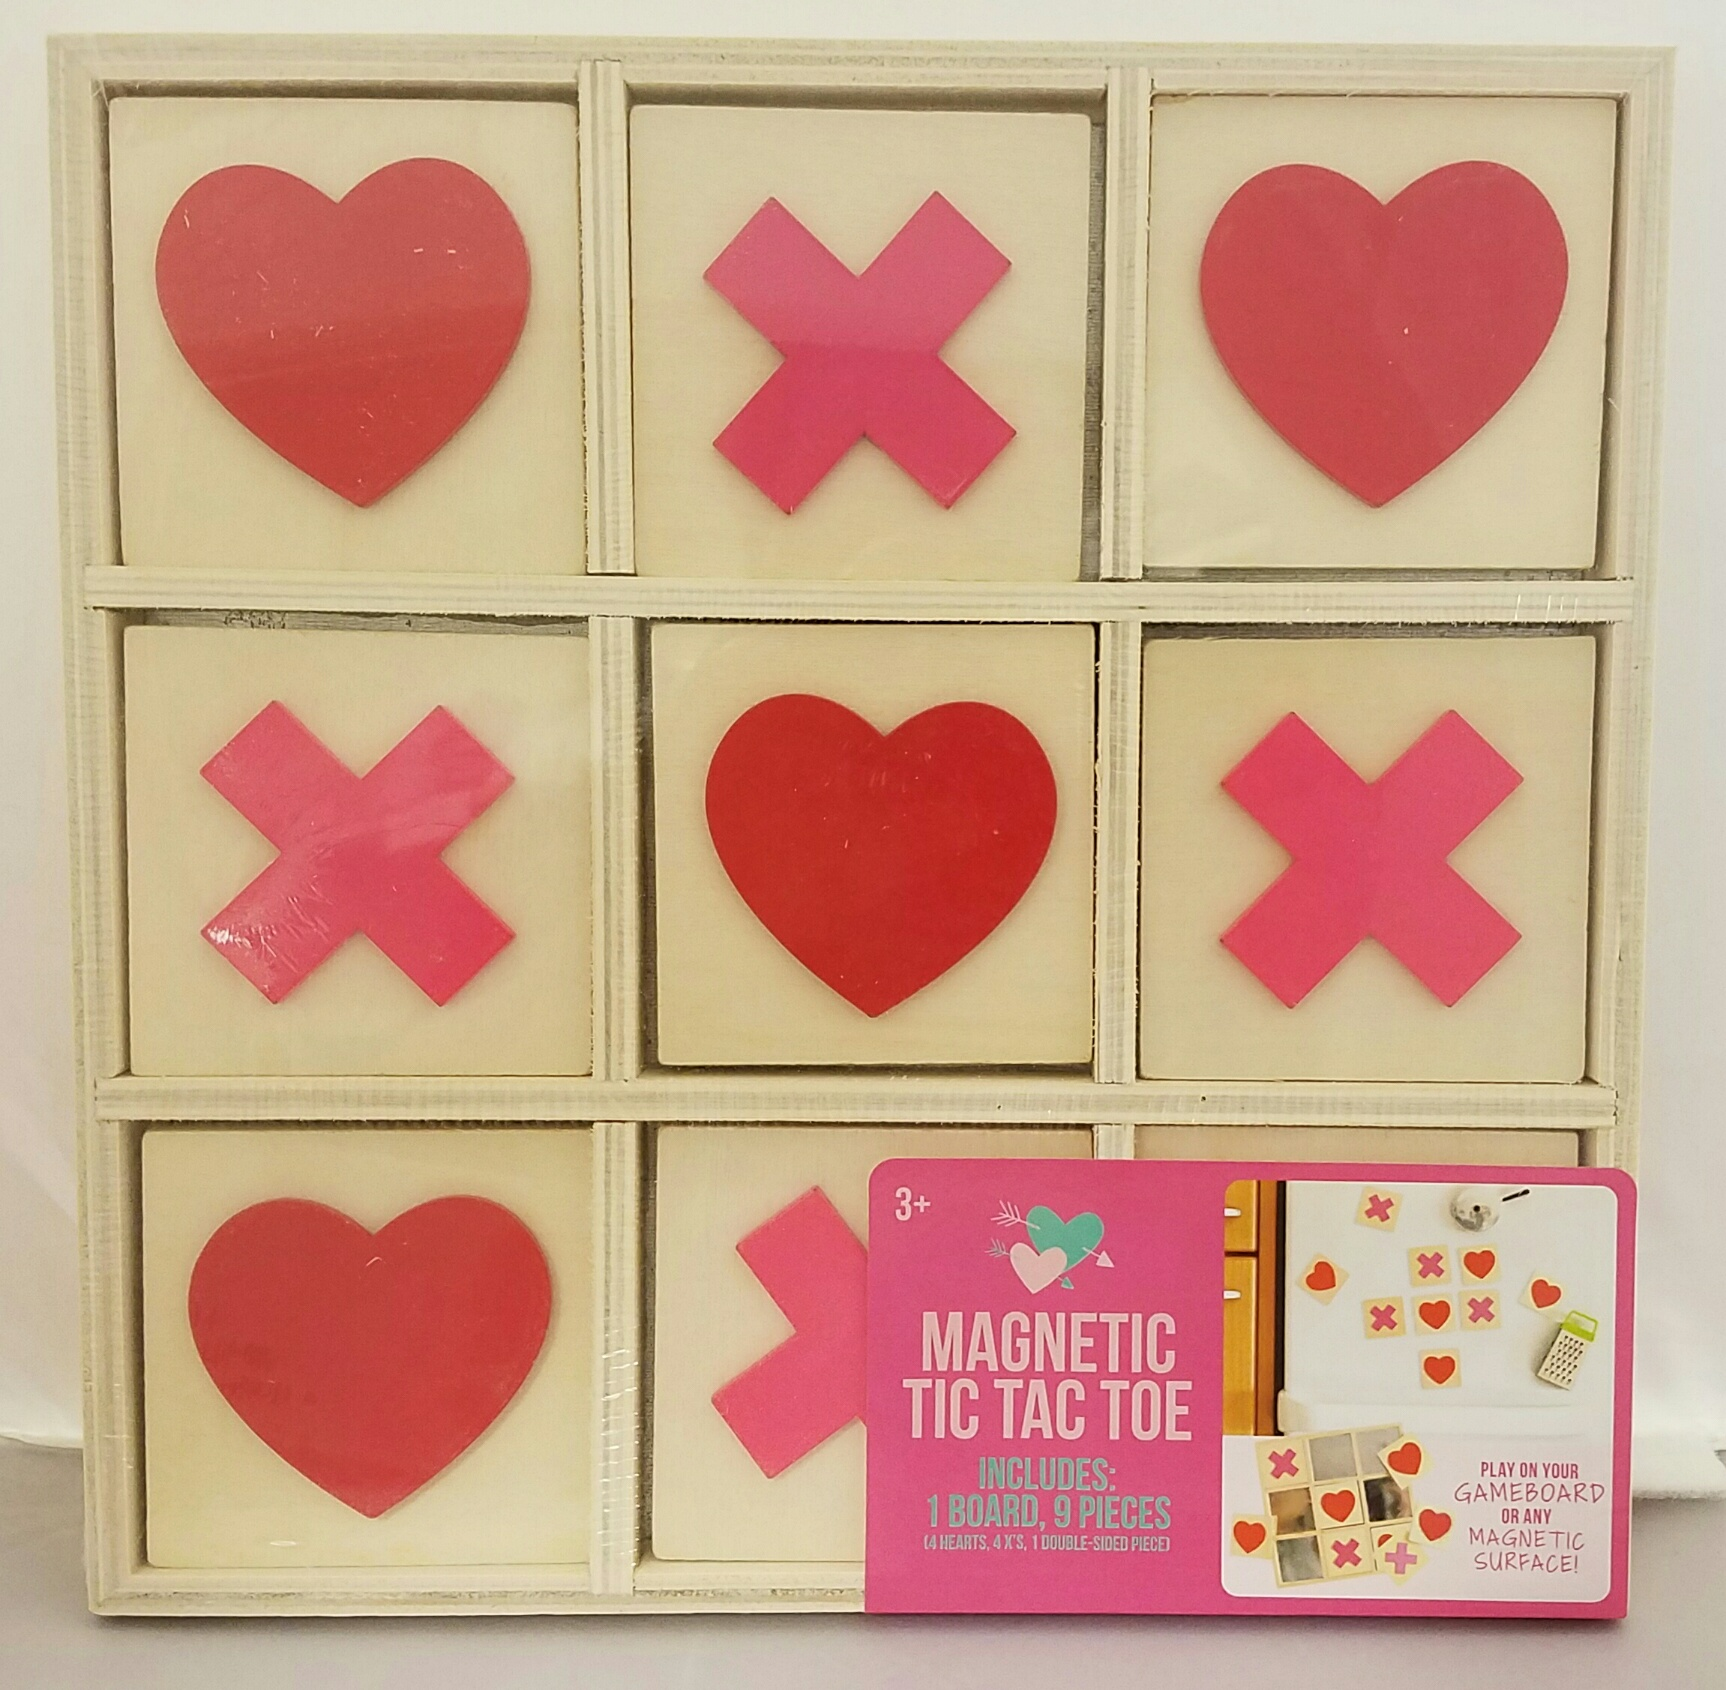 image of Magnetic tic tac toe games